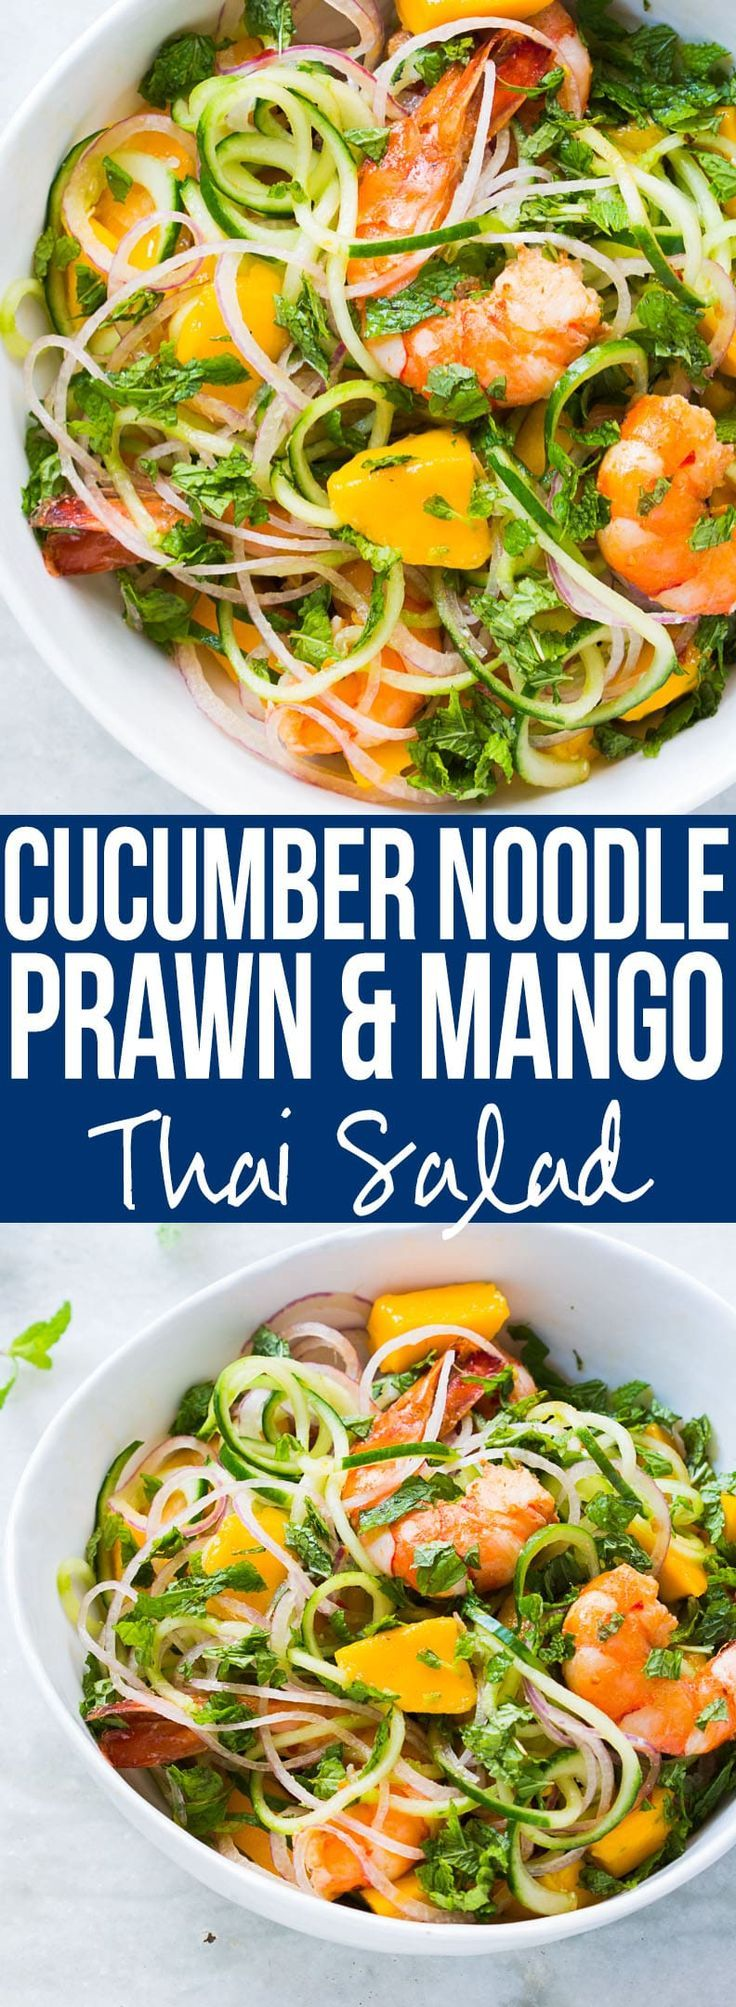 Super fresh cucumber noodle prawn and mango salad which is also gluten free. All the thai flavours of Bangkok in this hearty spiralizer salad recipe. I'm totally making this salad this summer! Easily made vegetarian and vegan too!